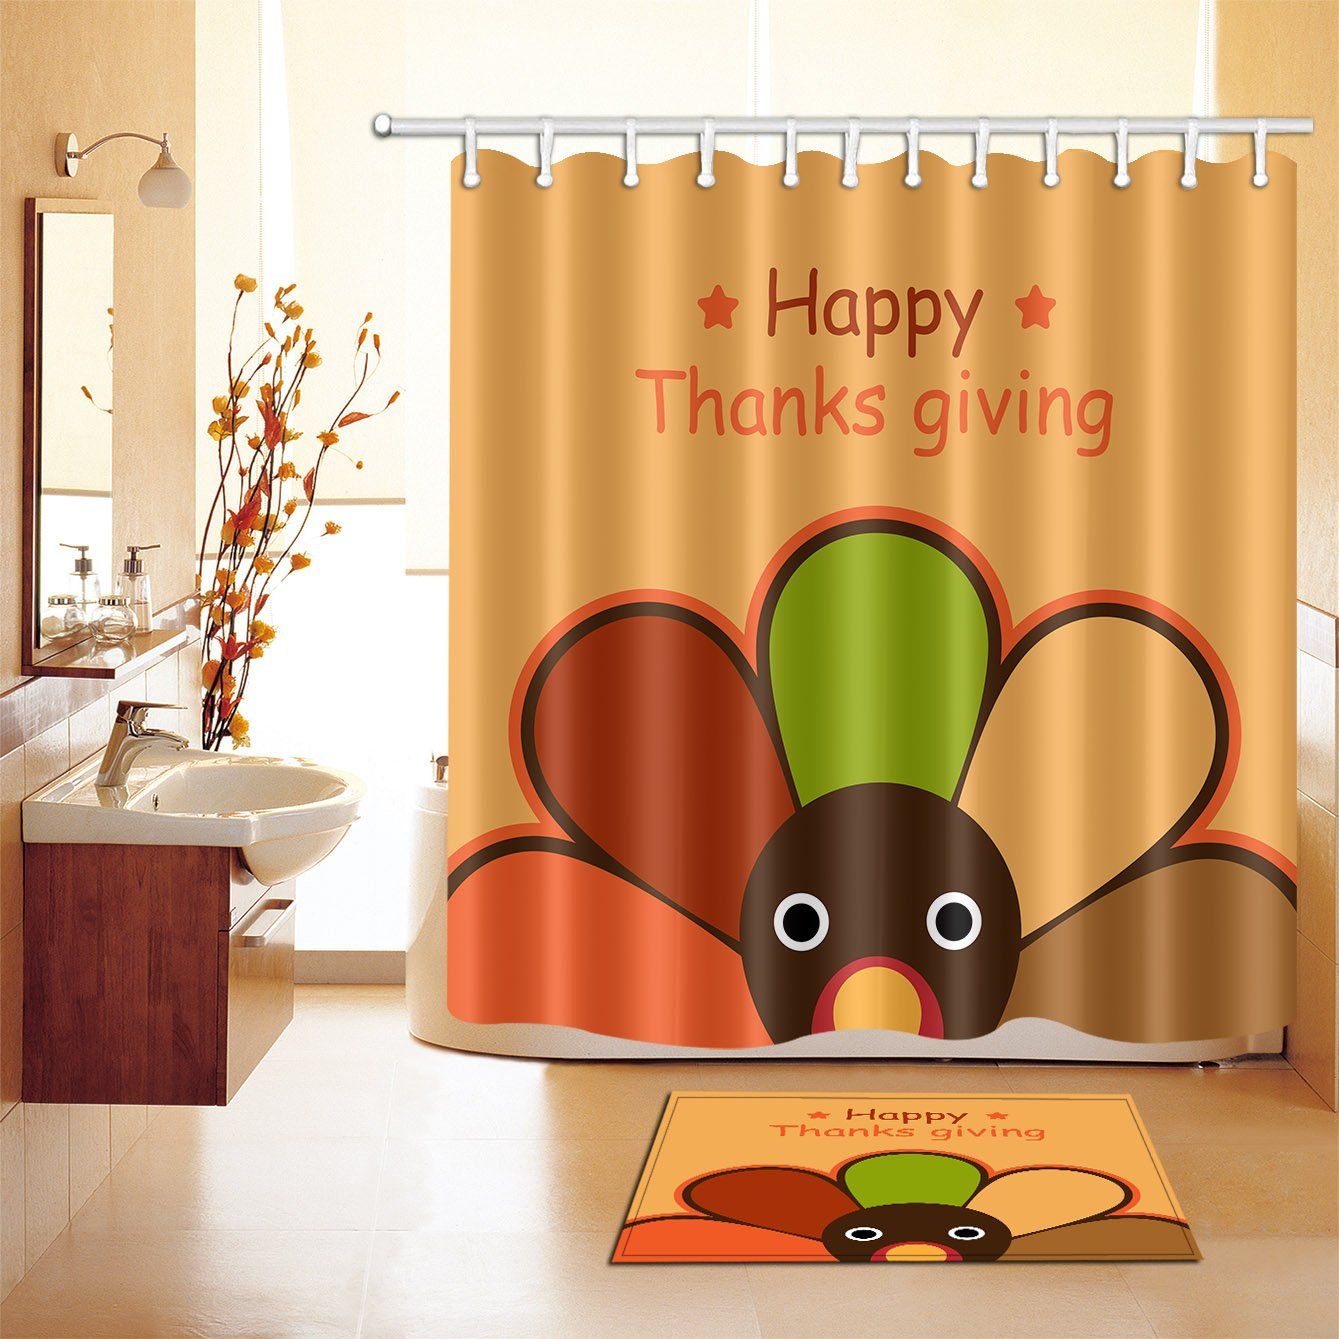 Happy Thanksgiving Day Thanks Giving Stylish Bath Rugs 3D Digital Printing 16x24 Inch Customized Personality Colorful Flower Turkey Peacock Outdoor Indoor Front Door Mat Non-slip Absorbent Bath Mat Colorful Life Shower Curtain YLHJ-150-180